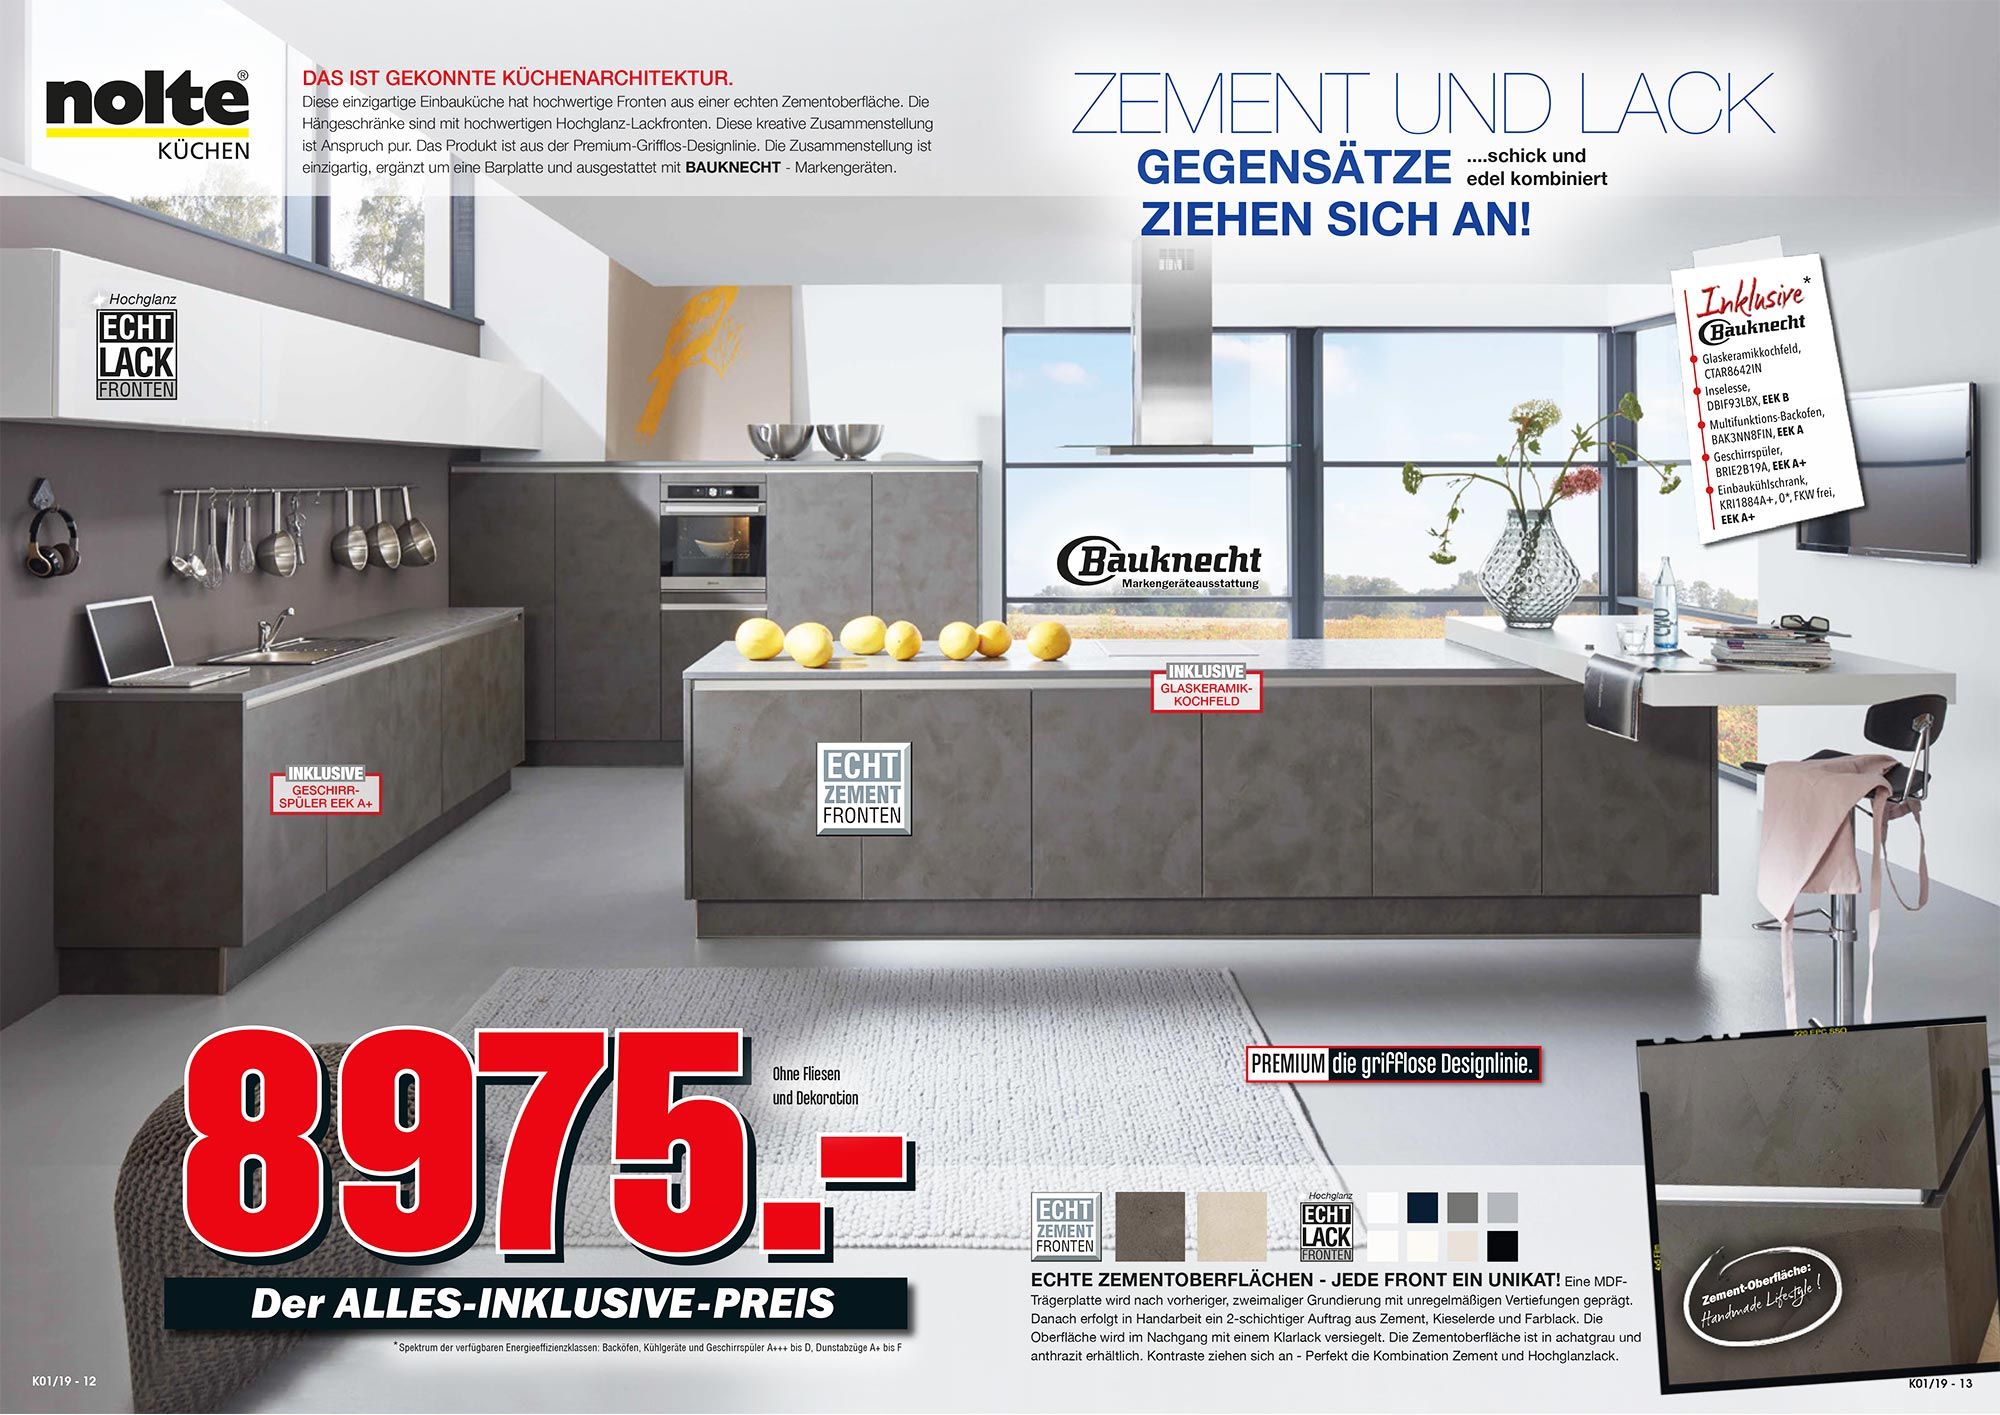 kchen reutlingen roller reutlingen kchen frisch landhaus. Black Bedroom Furniture Sets. Home Design Ideas